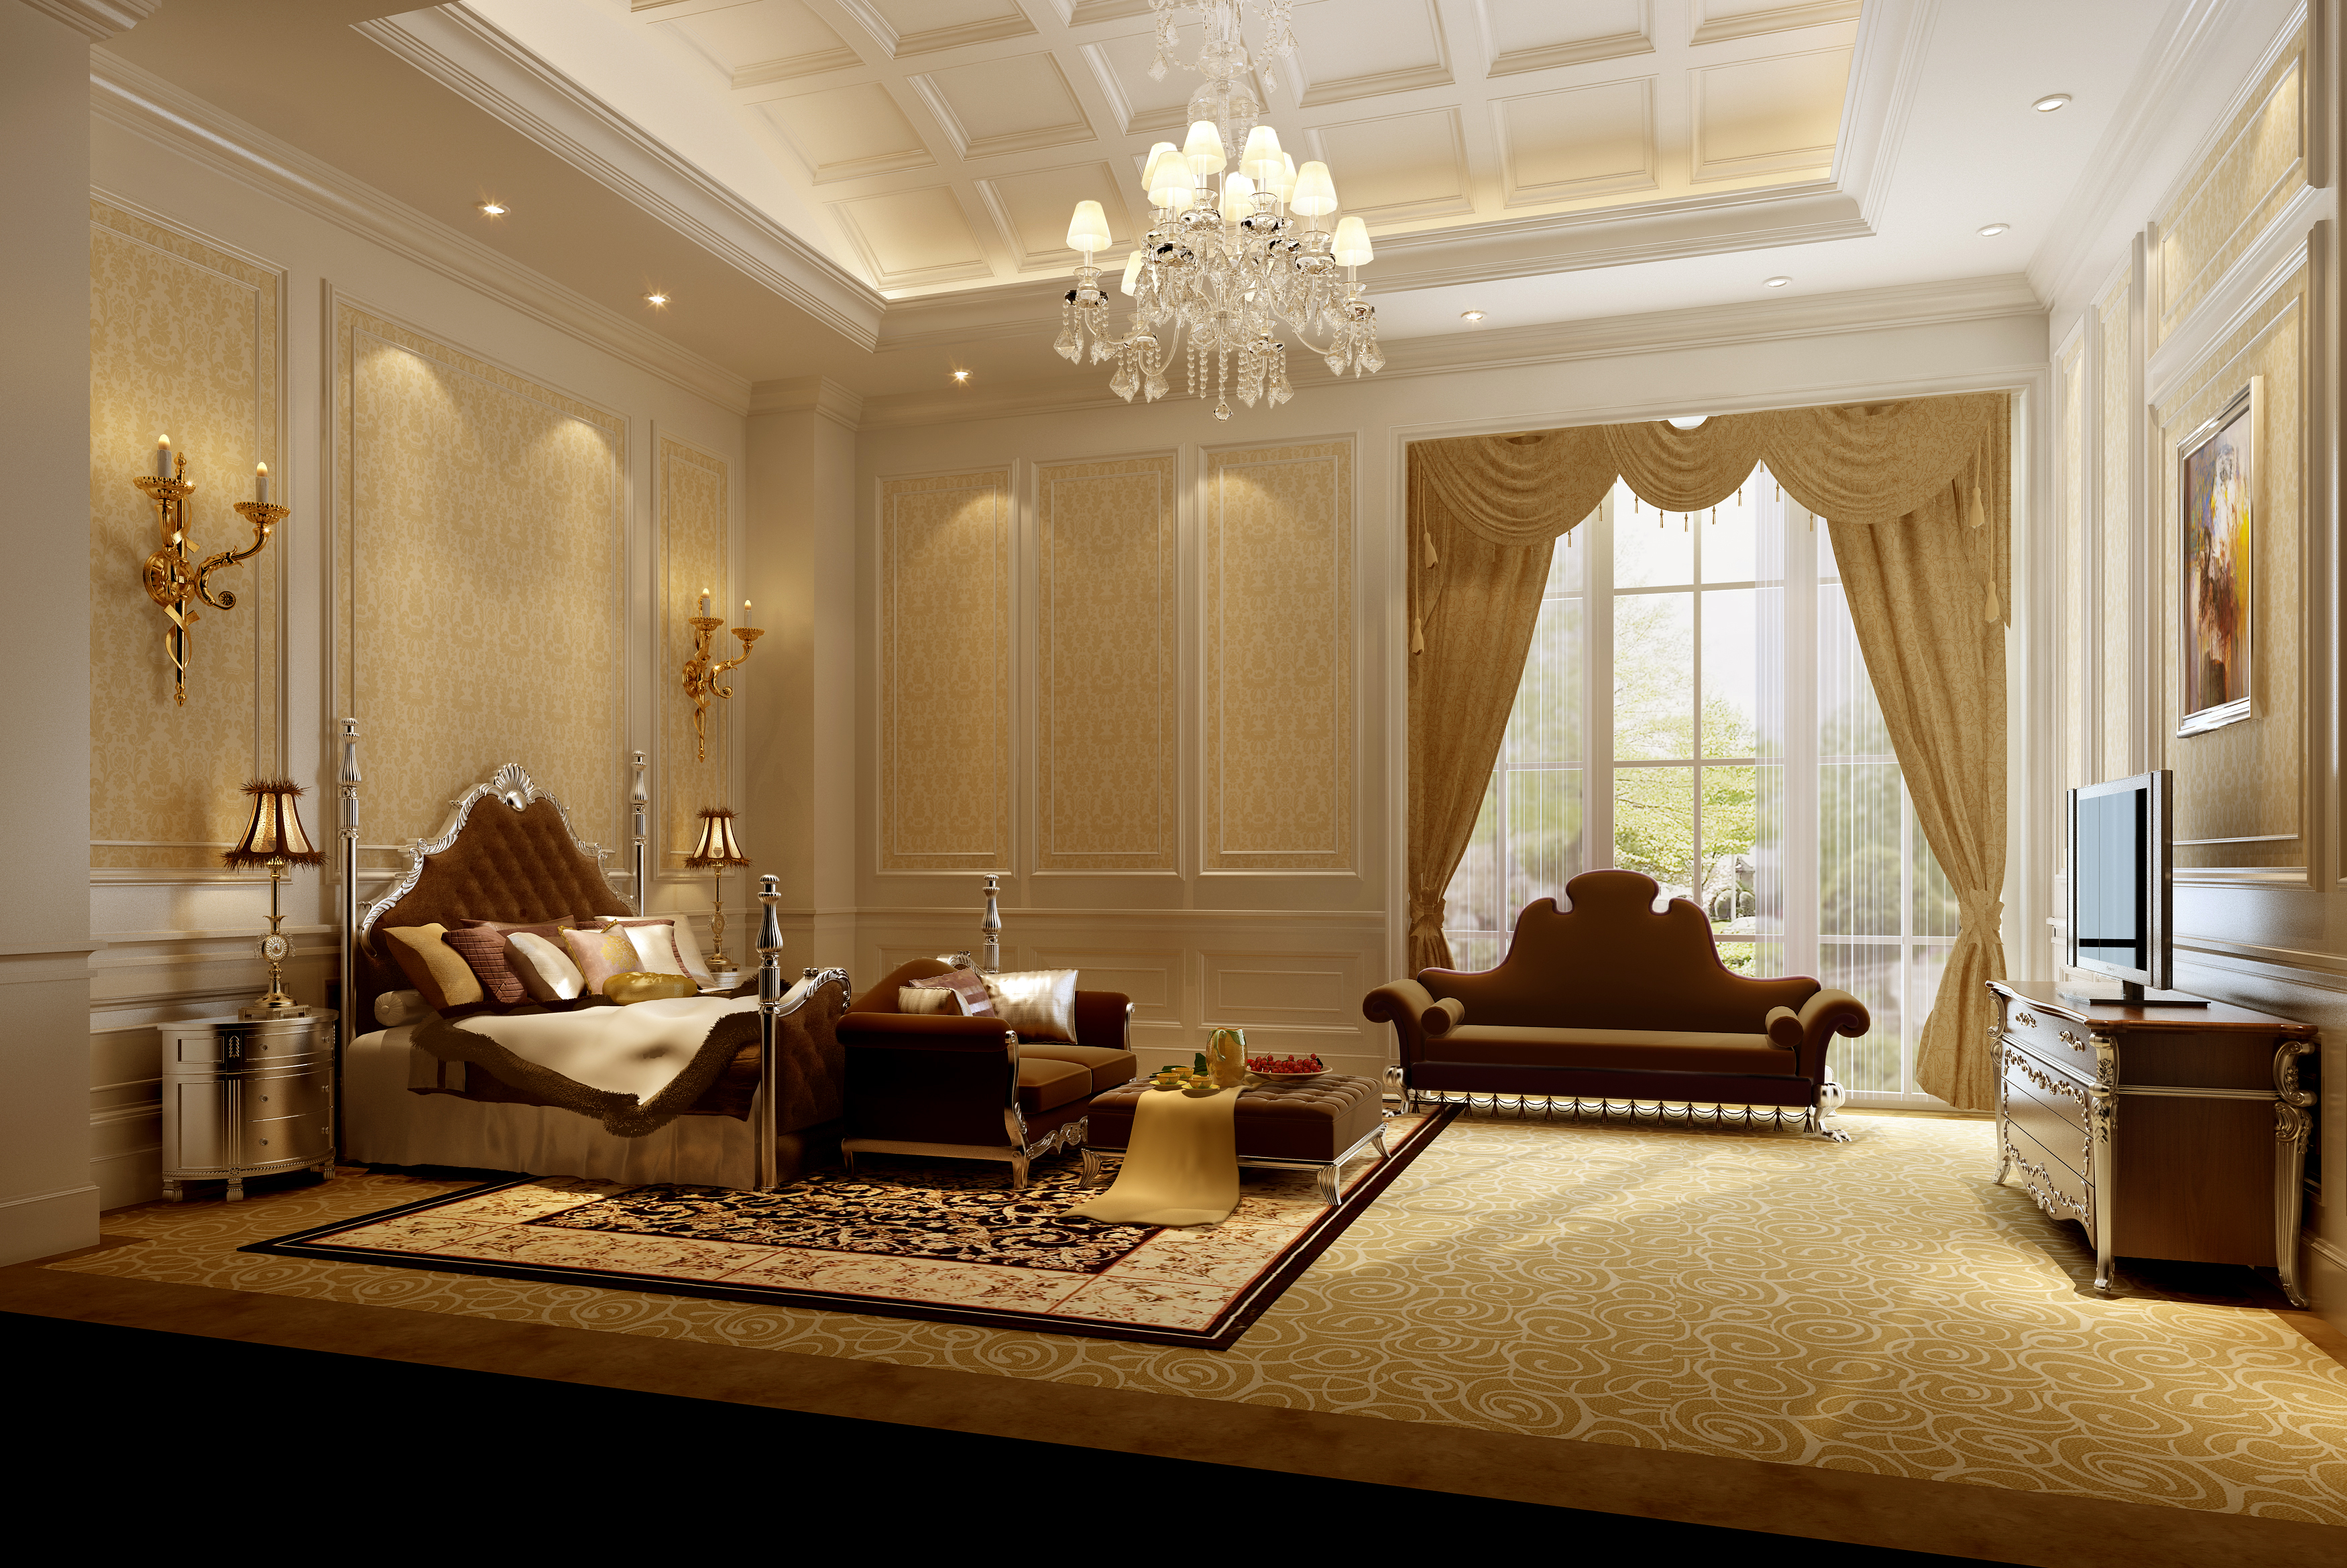 adhogg_builder_home_additions_master_suite-3